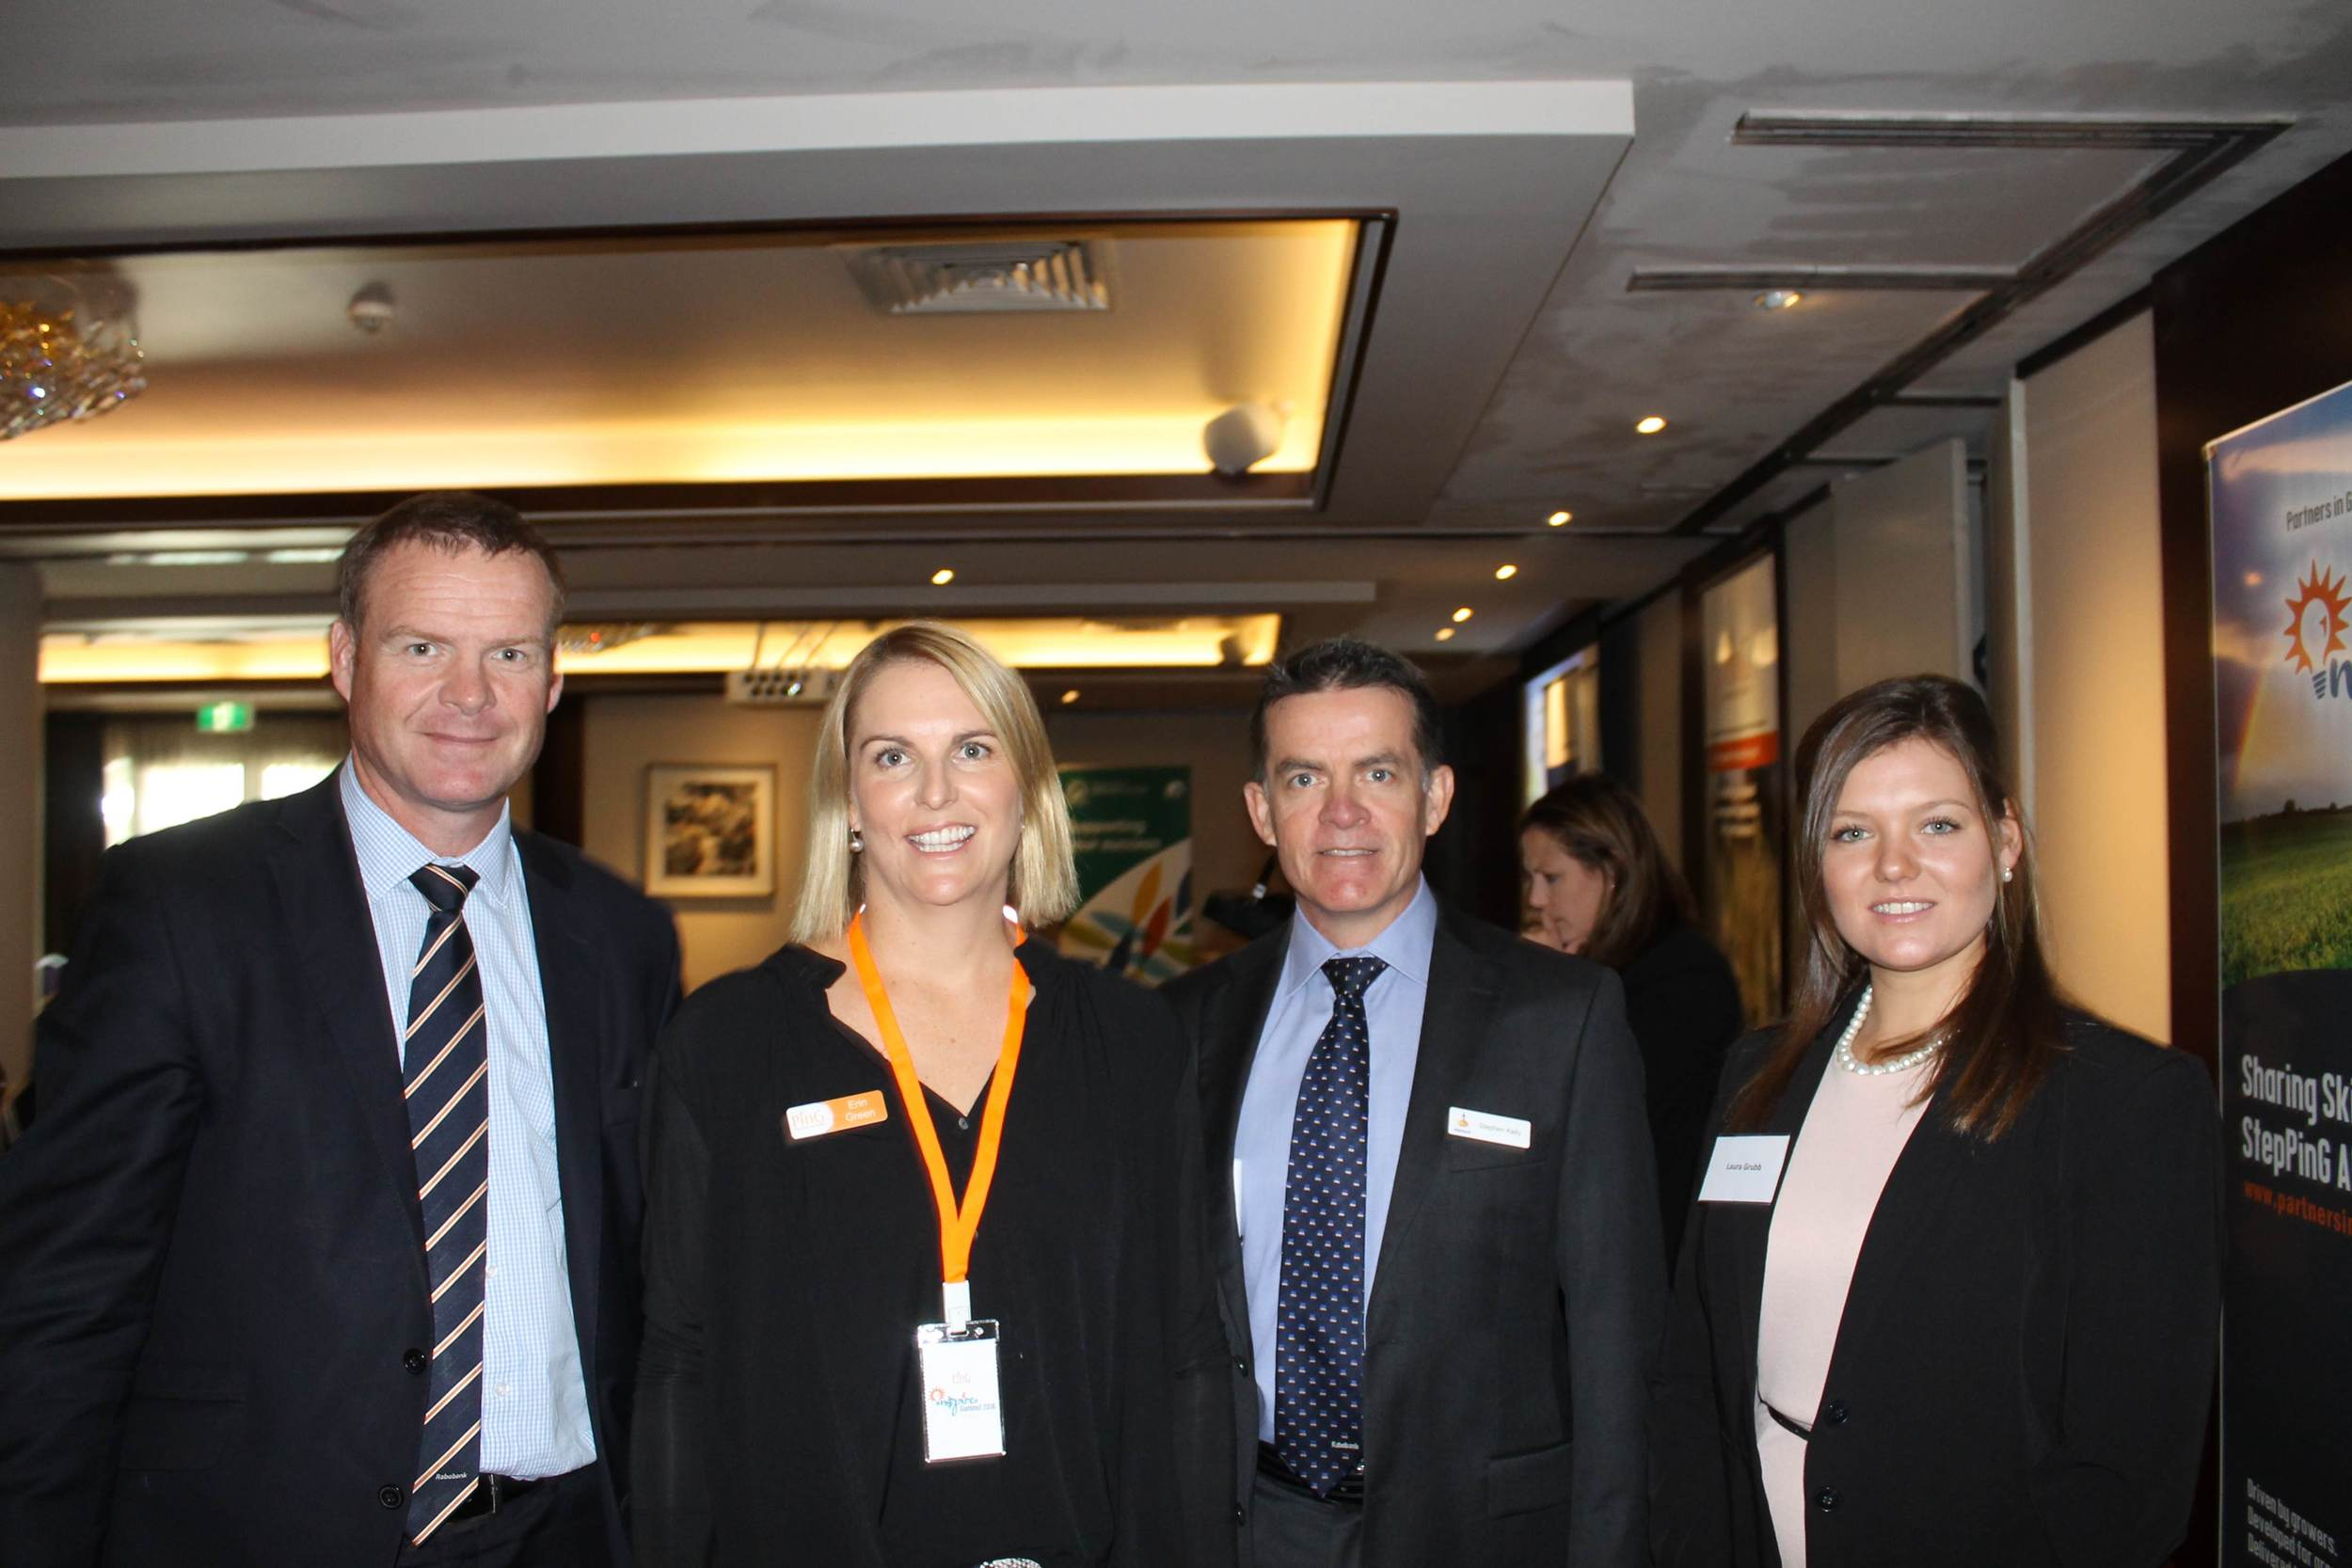 From left: Todd Charteris (national manager of Rabobank); Erin Green (Partners in Grain WA coordinator); Steve Kelly (acting WA manager of Rabobank); and Laura Grubb (speaker, Youth-Ag delegate and WA Agvocate). Picture: Perth Media